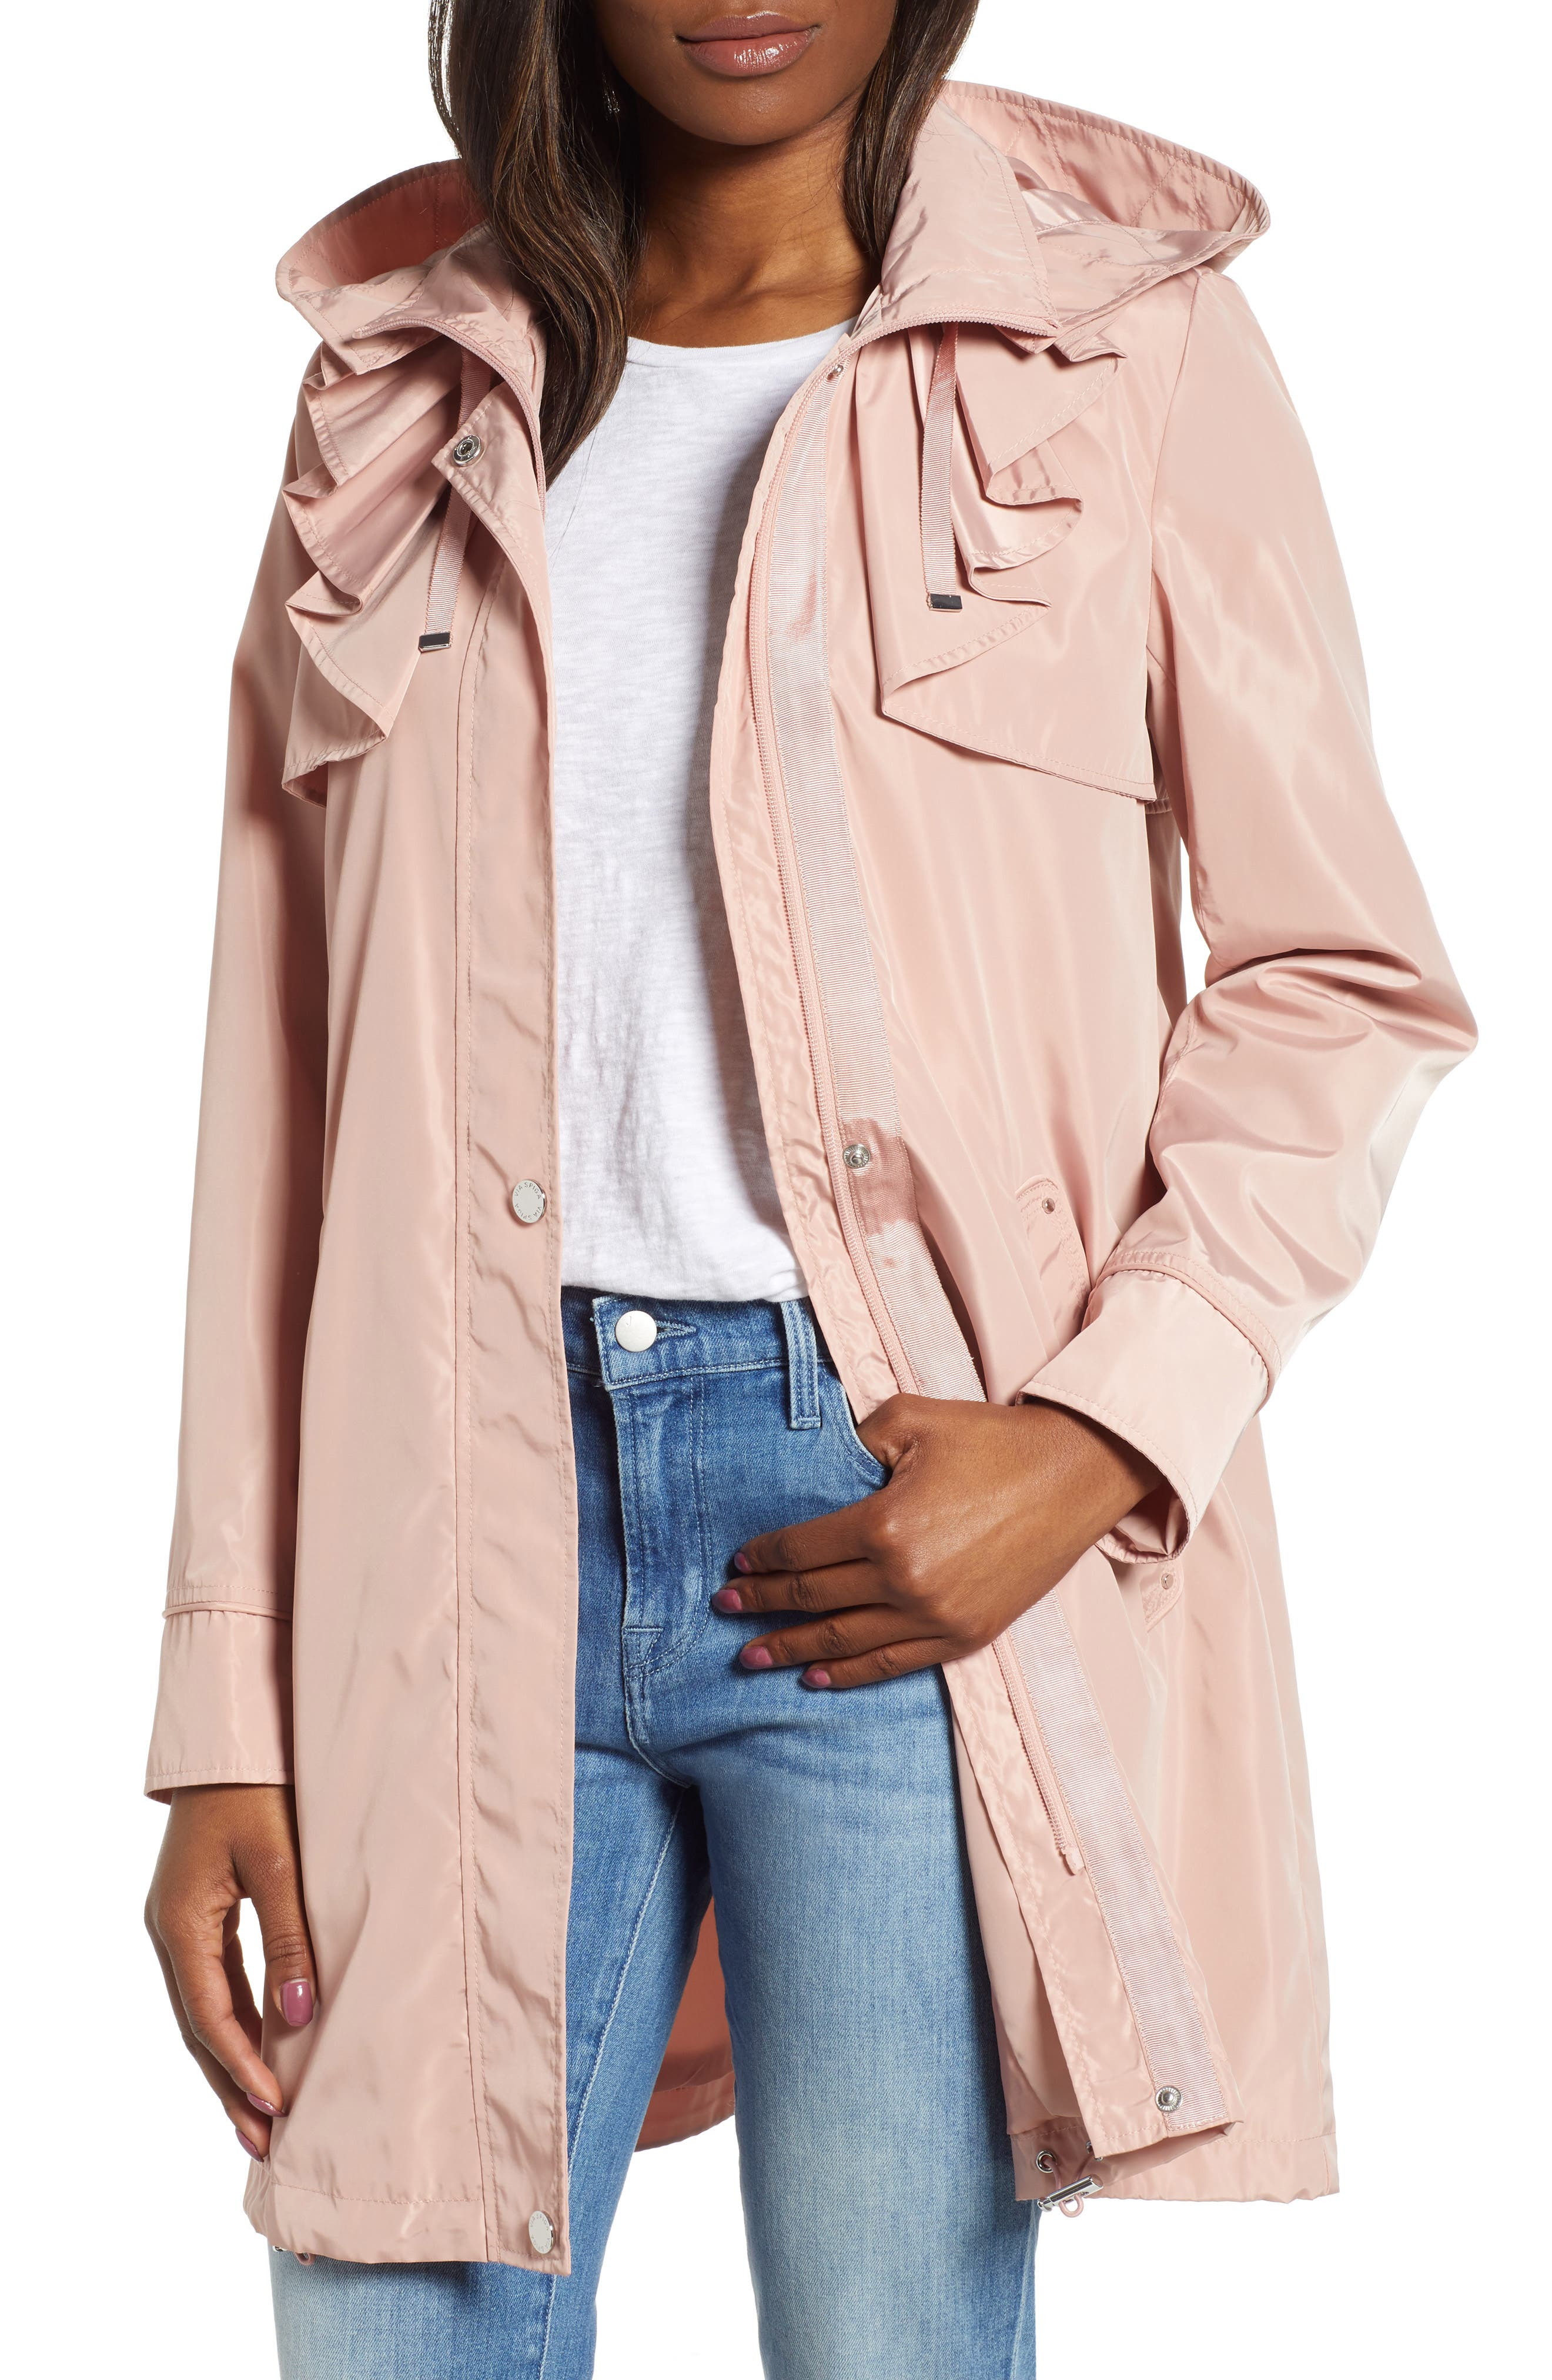 Via Spiga Ruffle Detail Packable Raincoat, Pink